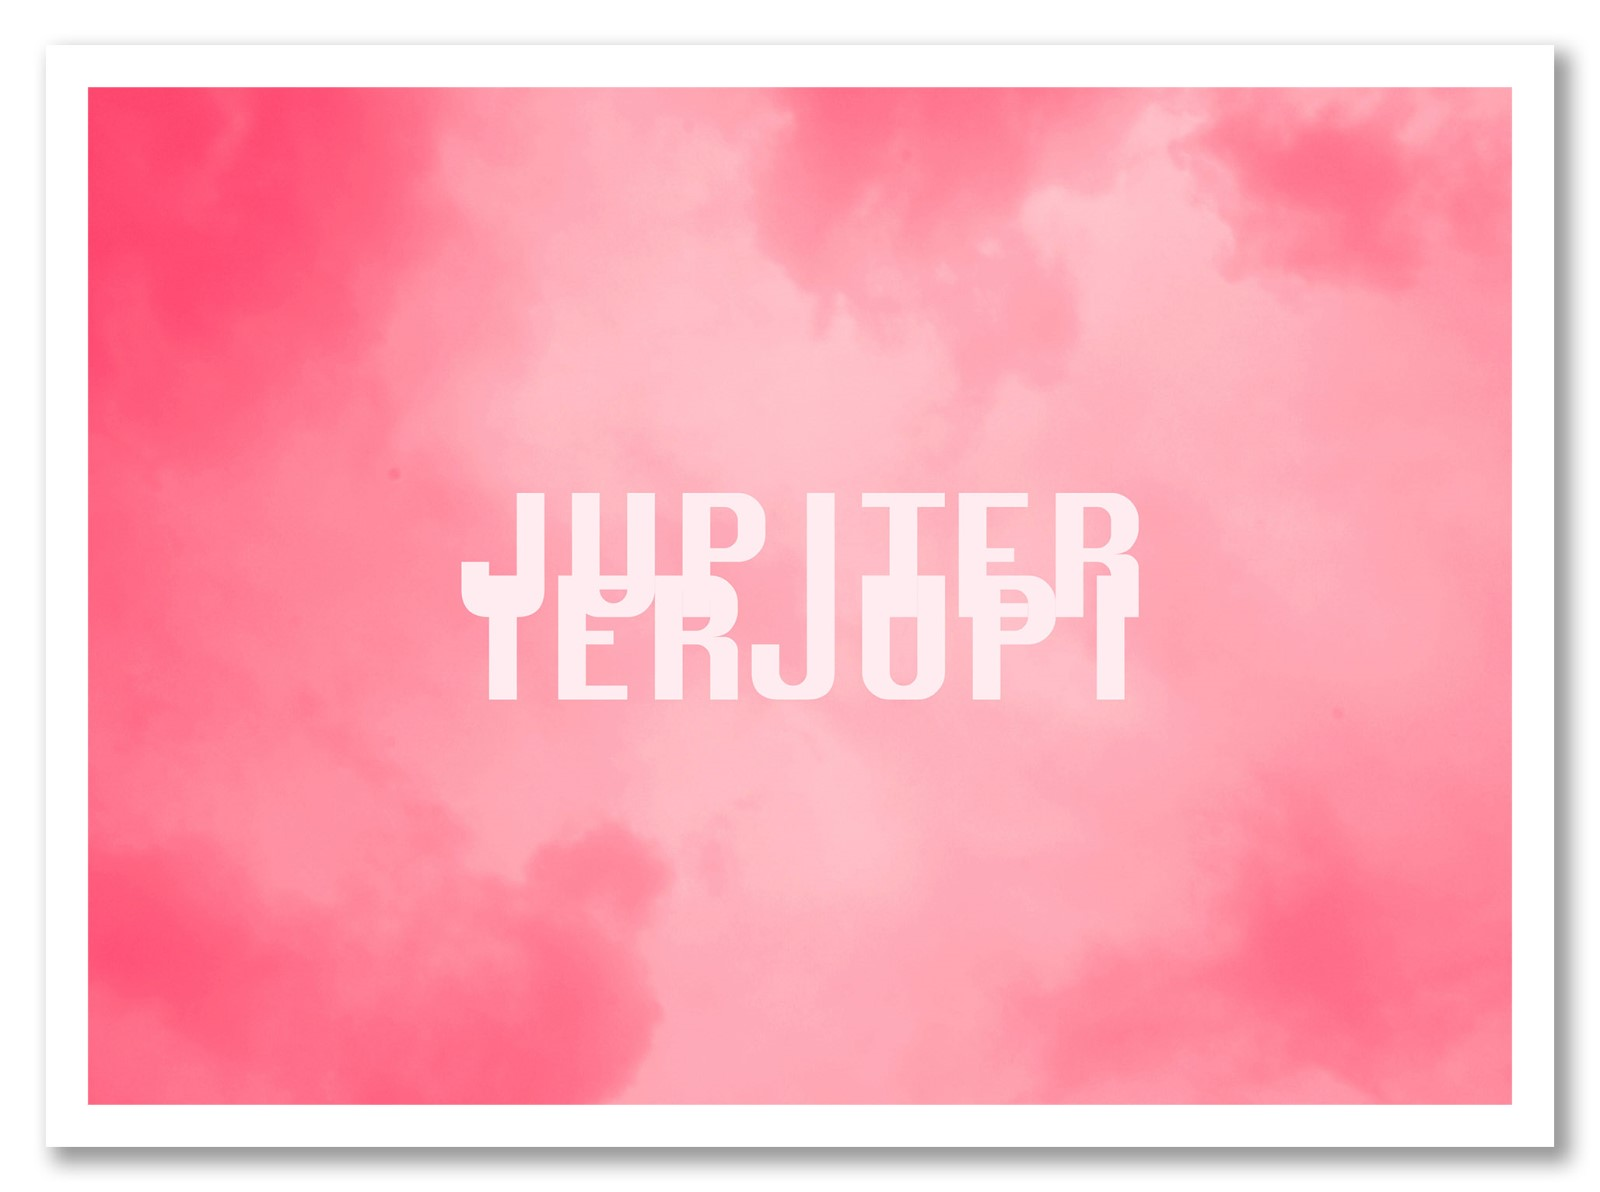 Design - Jupiter Rose